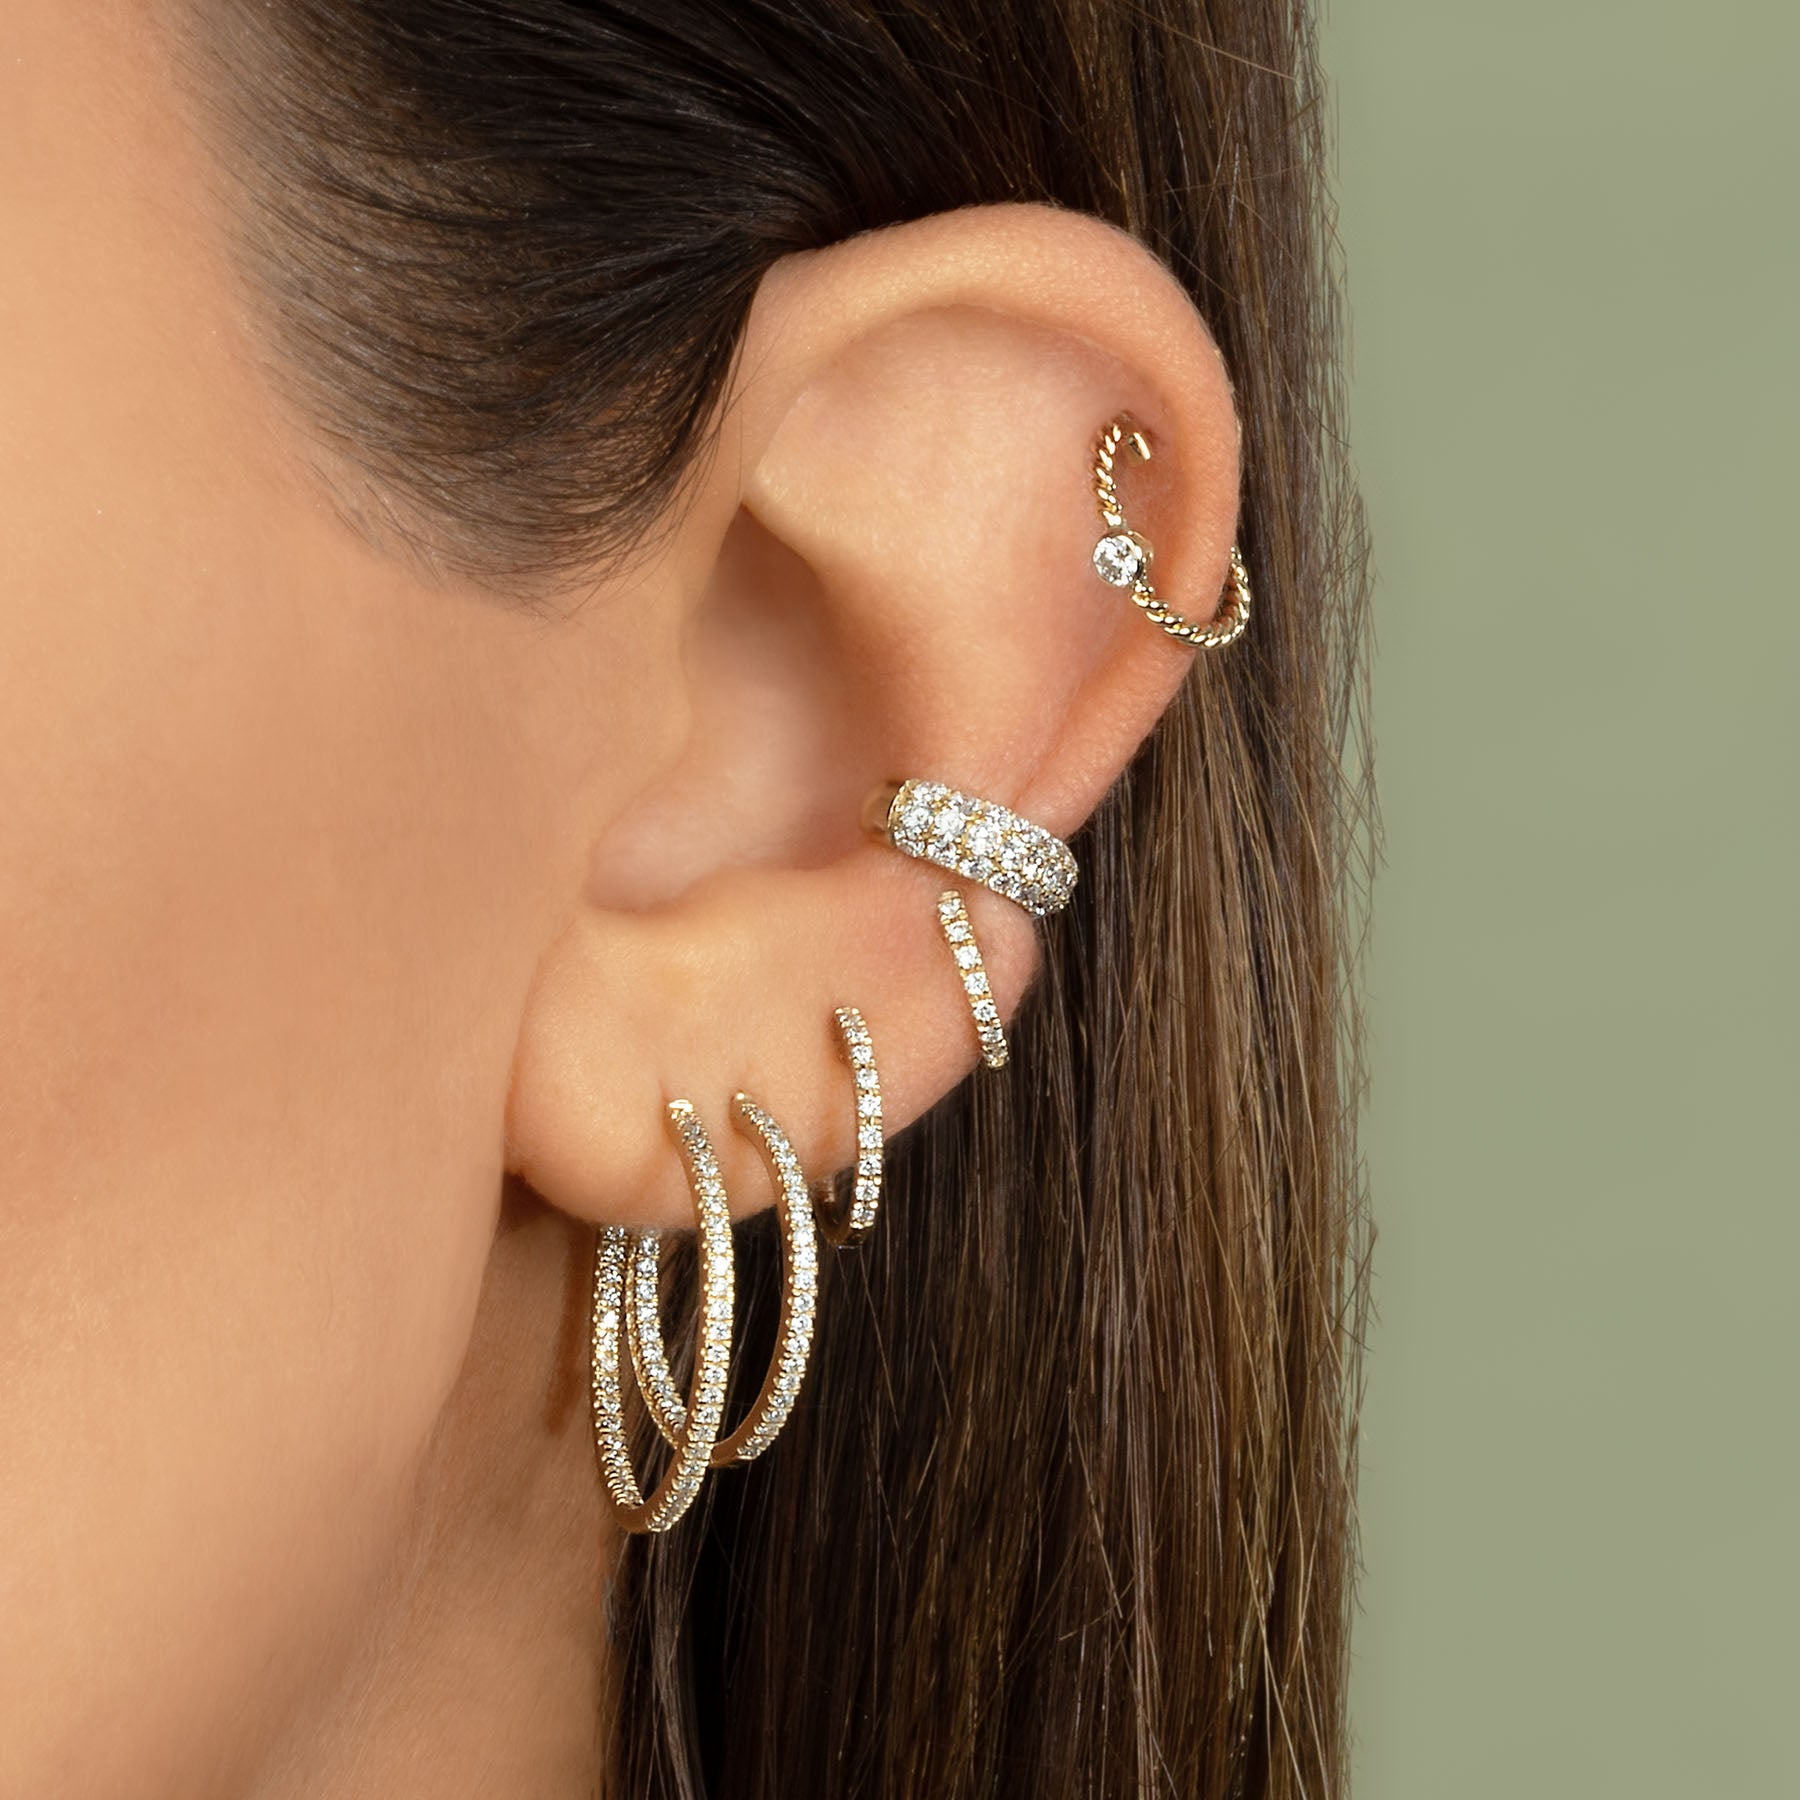 MEDIUM DIAMOND HUGGIE EARRING